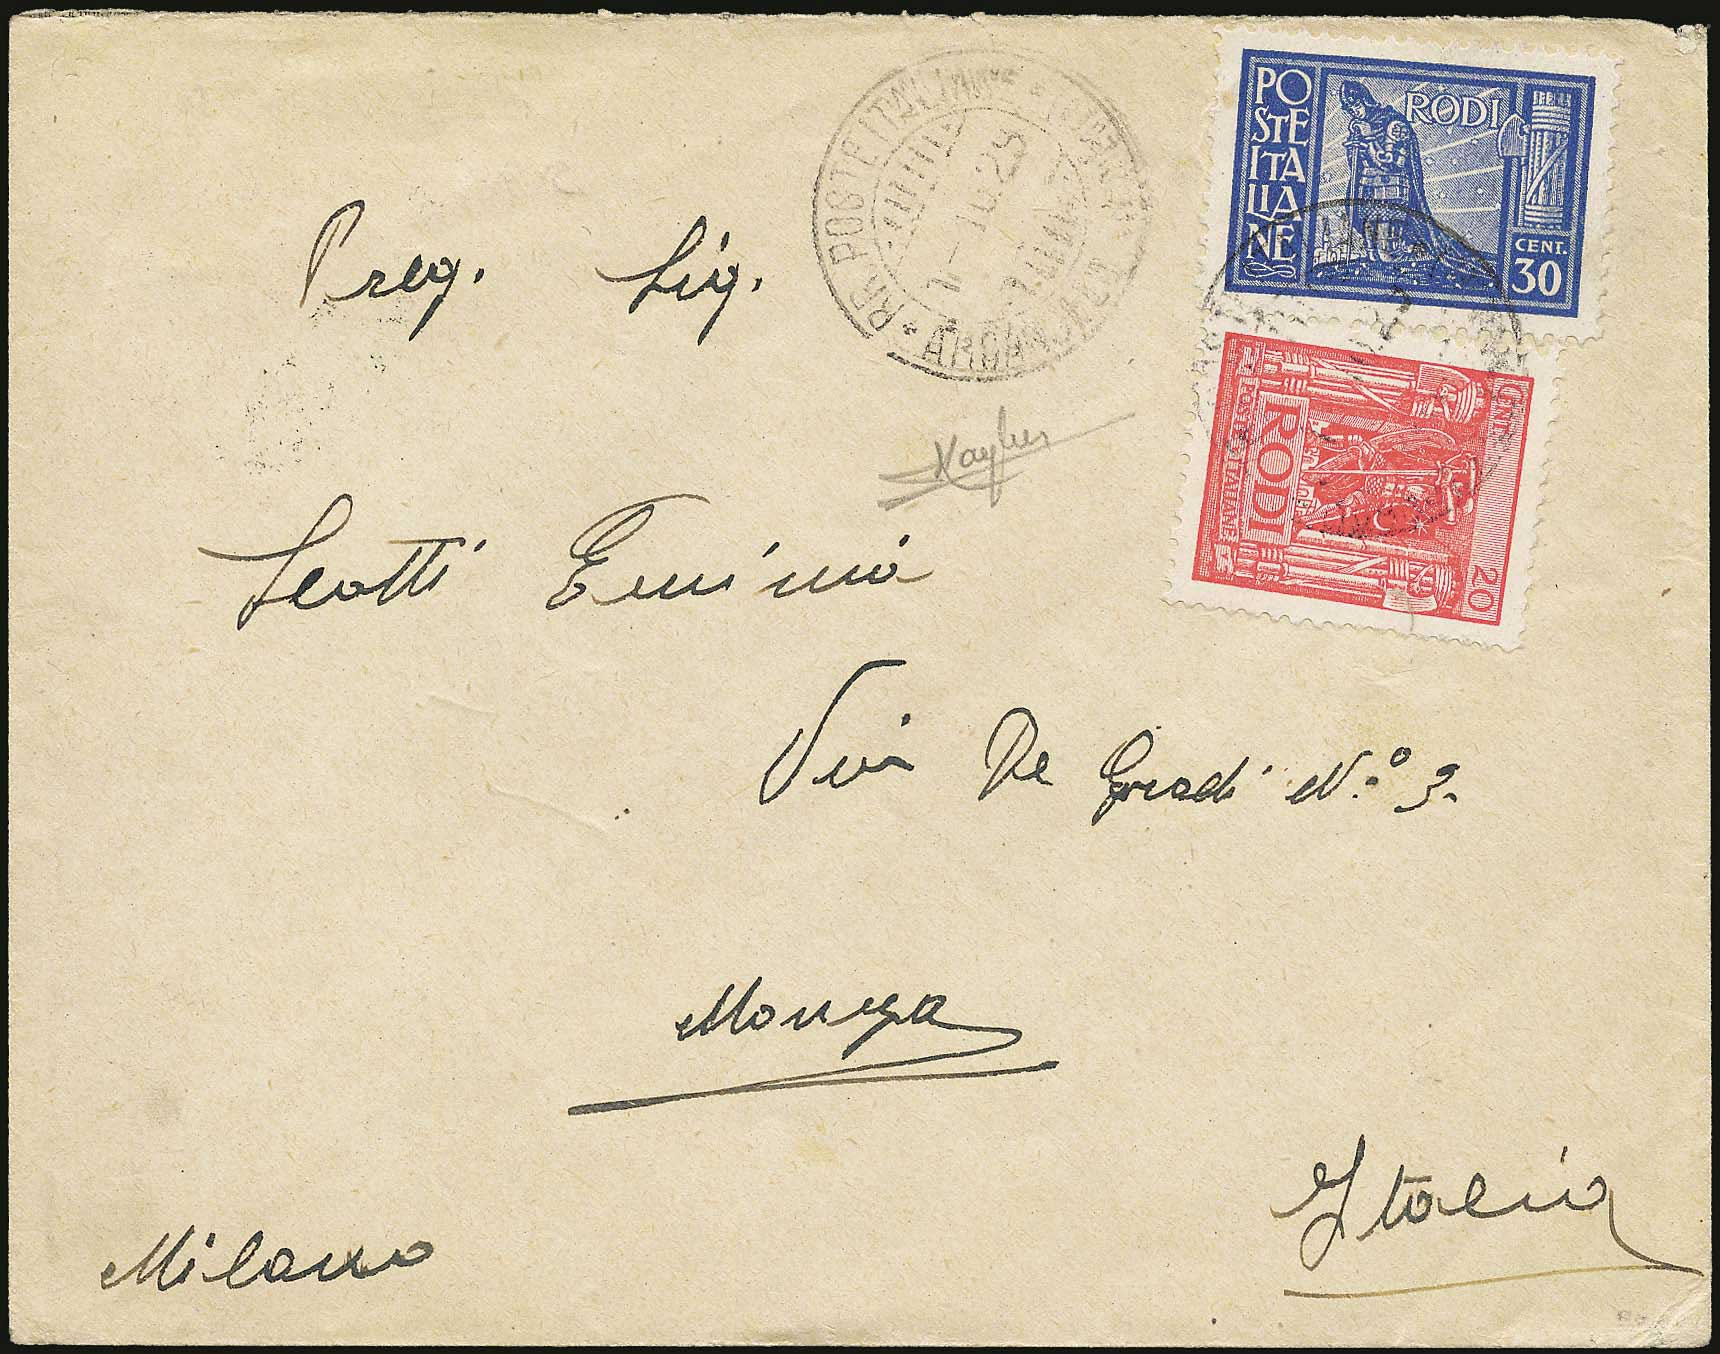 Lot 659 - Dodecanese italian dodecanese - italian post office issues -  A. Karamitsos Postal & Live Internet Auction 680 General Philatelic Auction